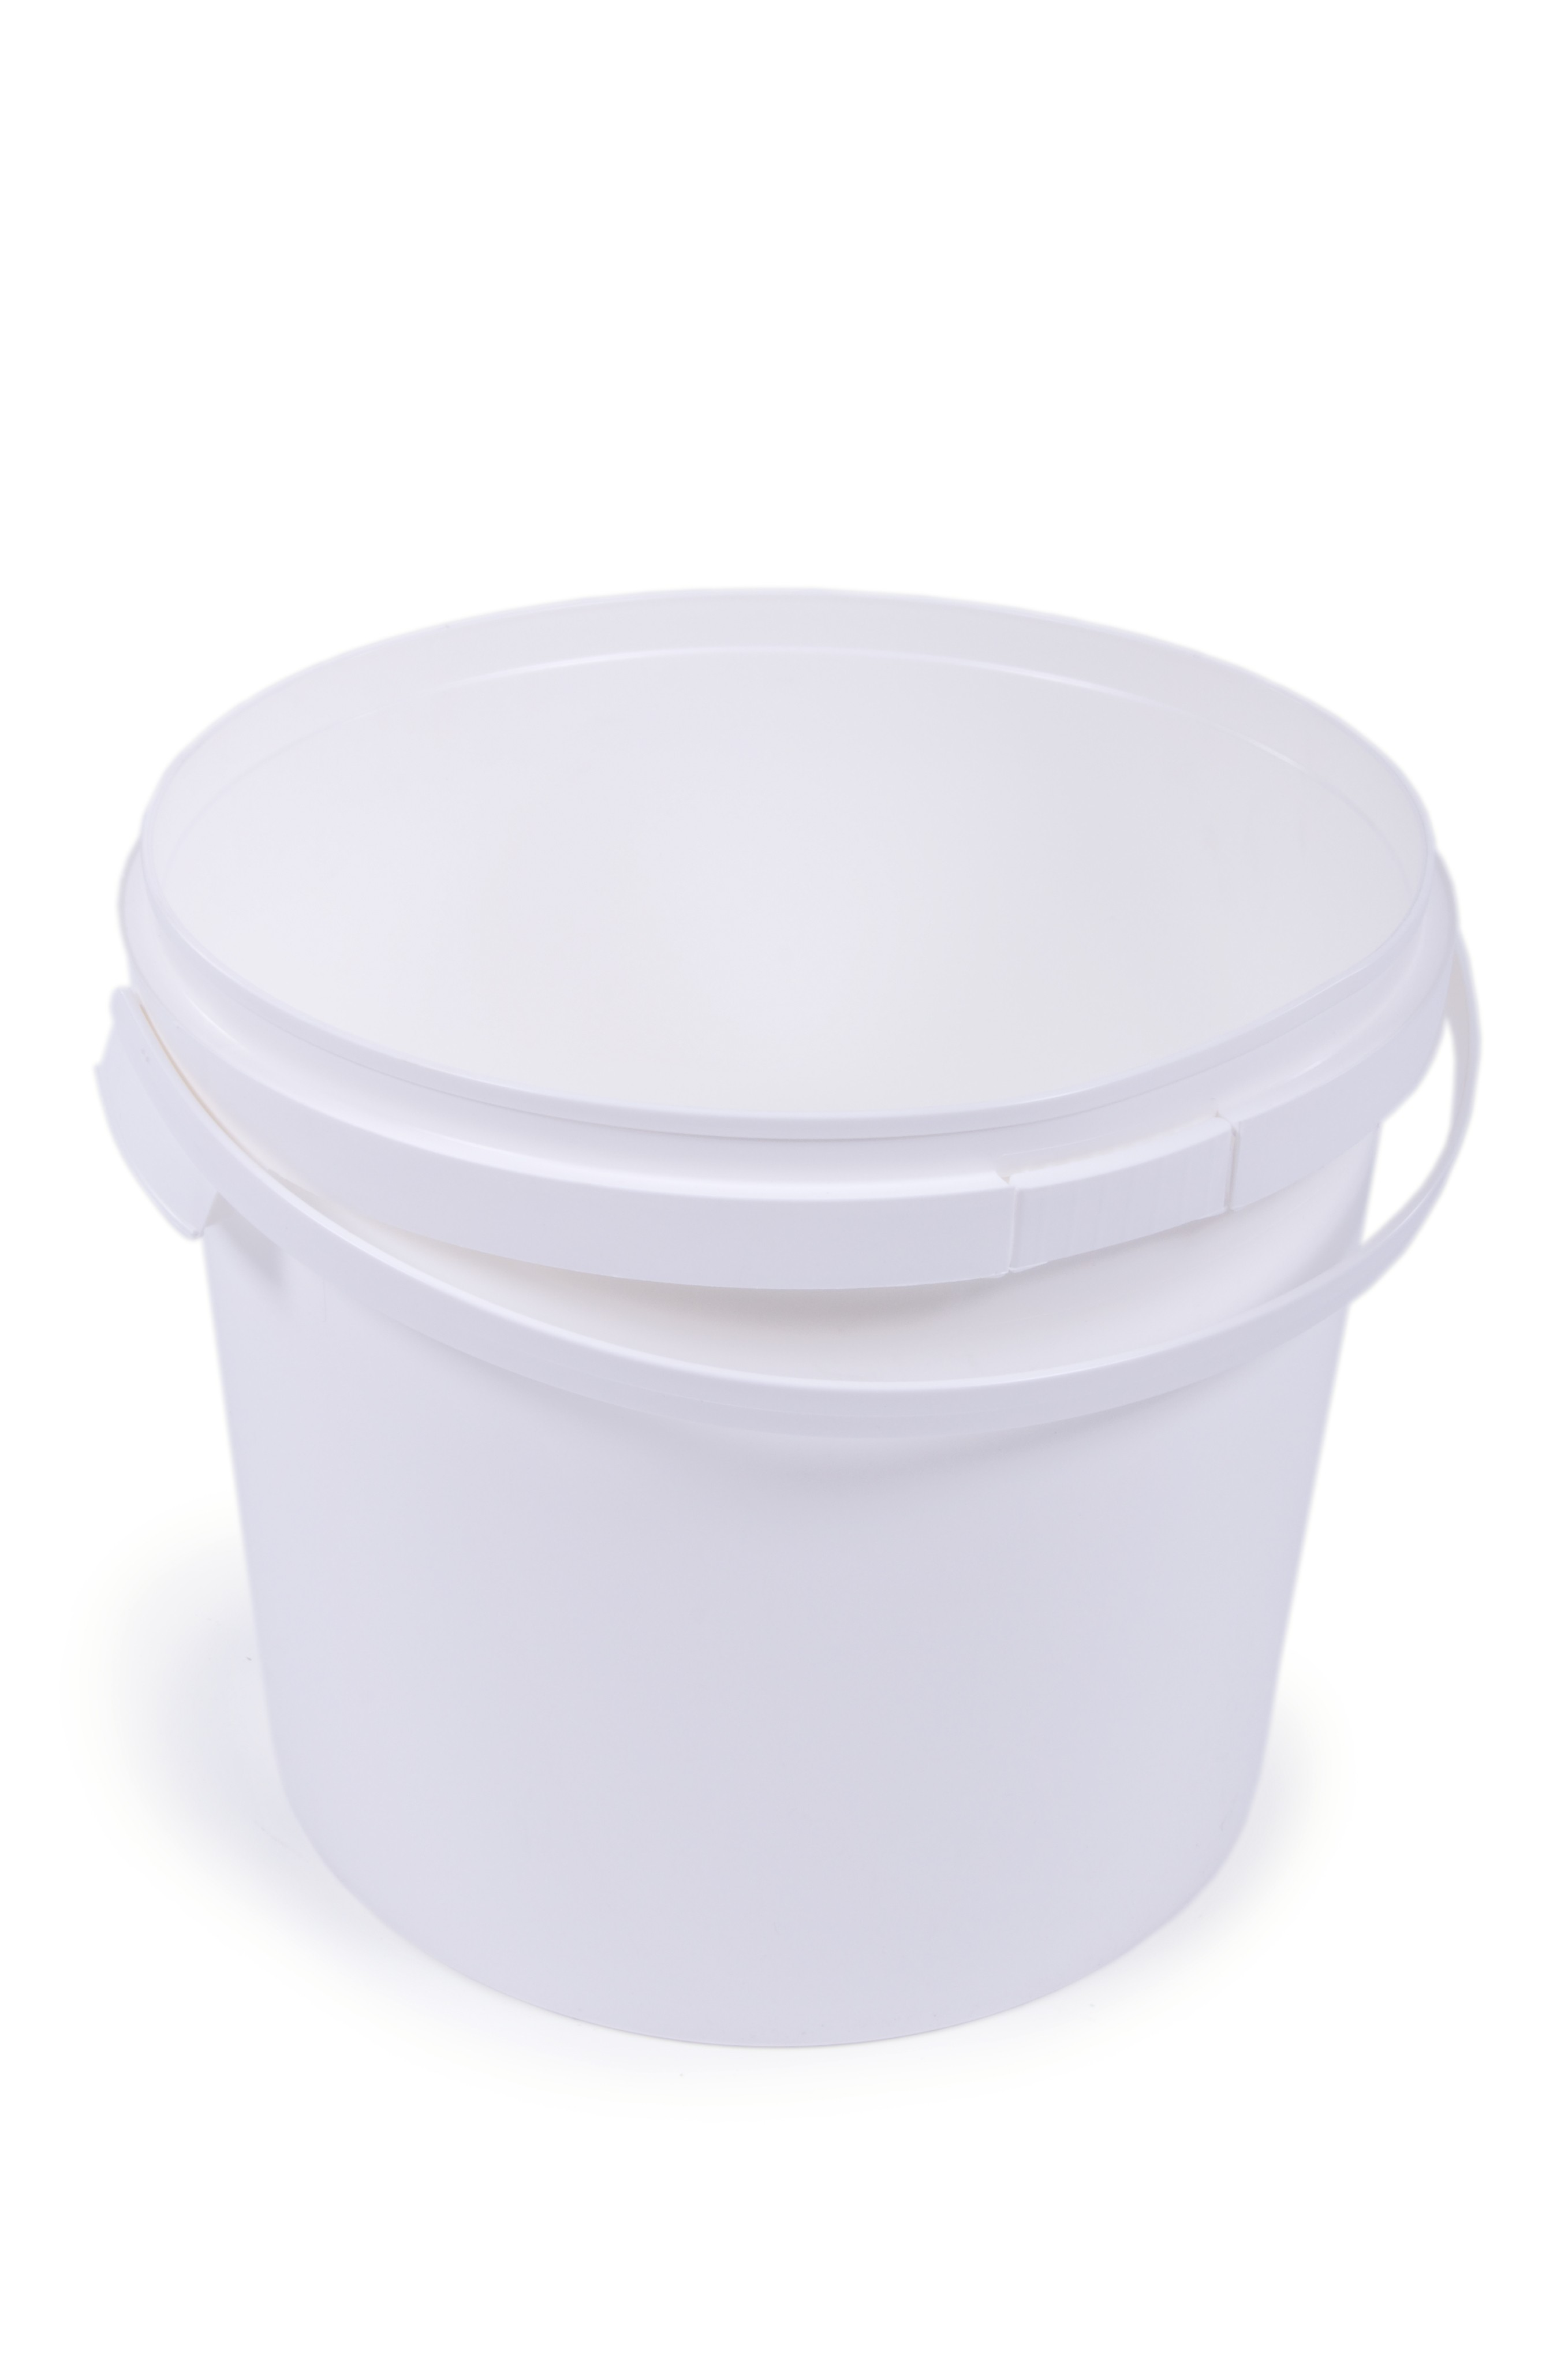 Plastic Pail With Airtight Lid 20 Litre Plastic Buckets